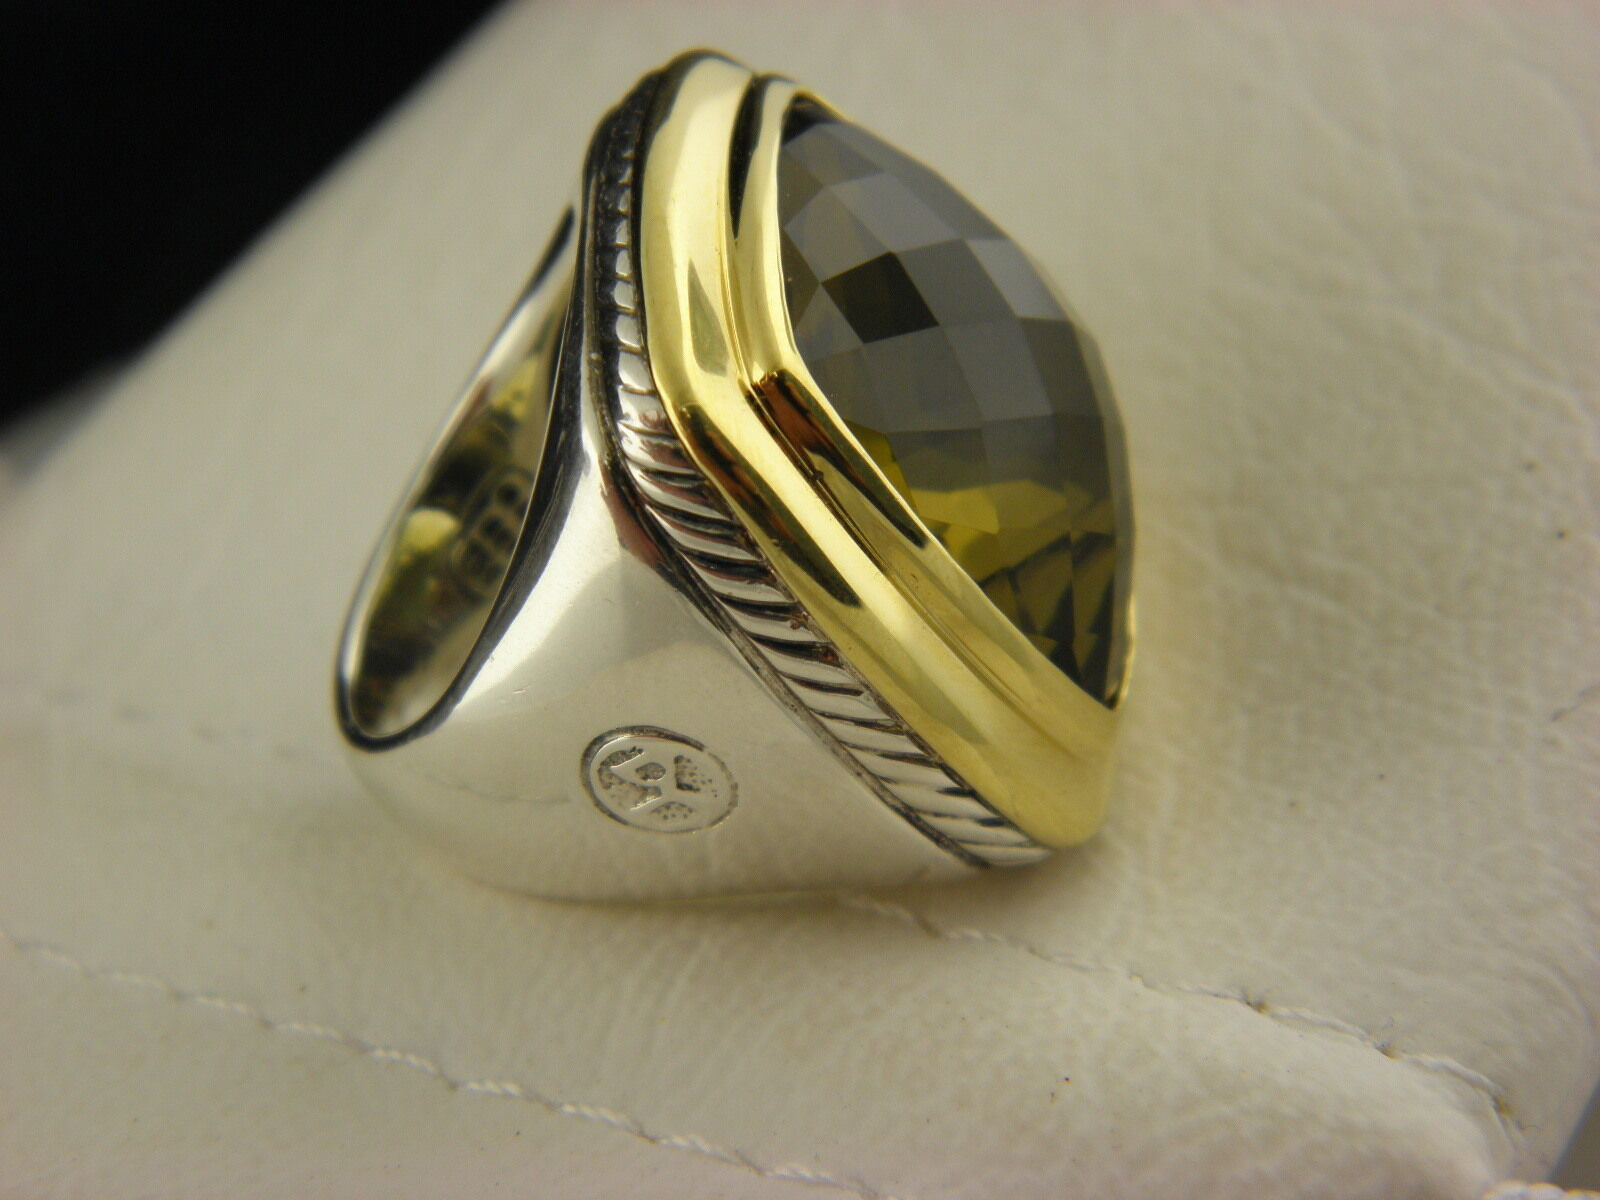 DAVID YURMAN 20 X 20  ALBION OLIVE CITRINE RING STERLING SILVER &18K GOLD.